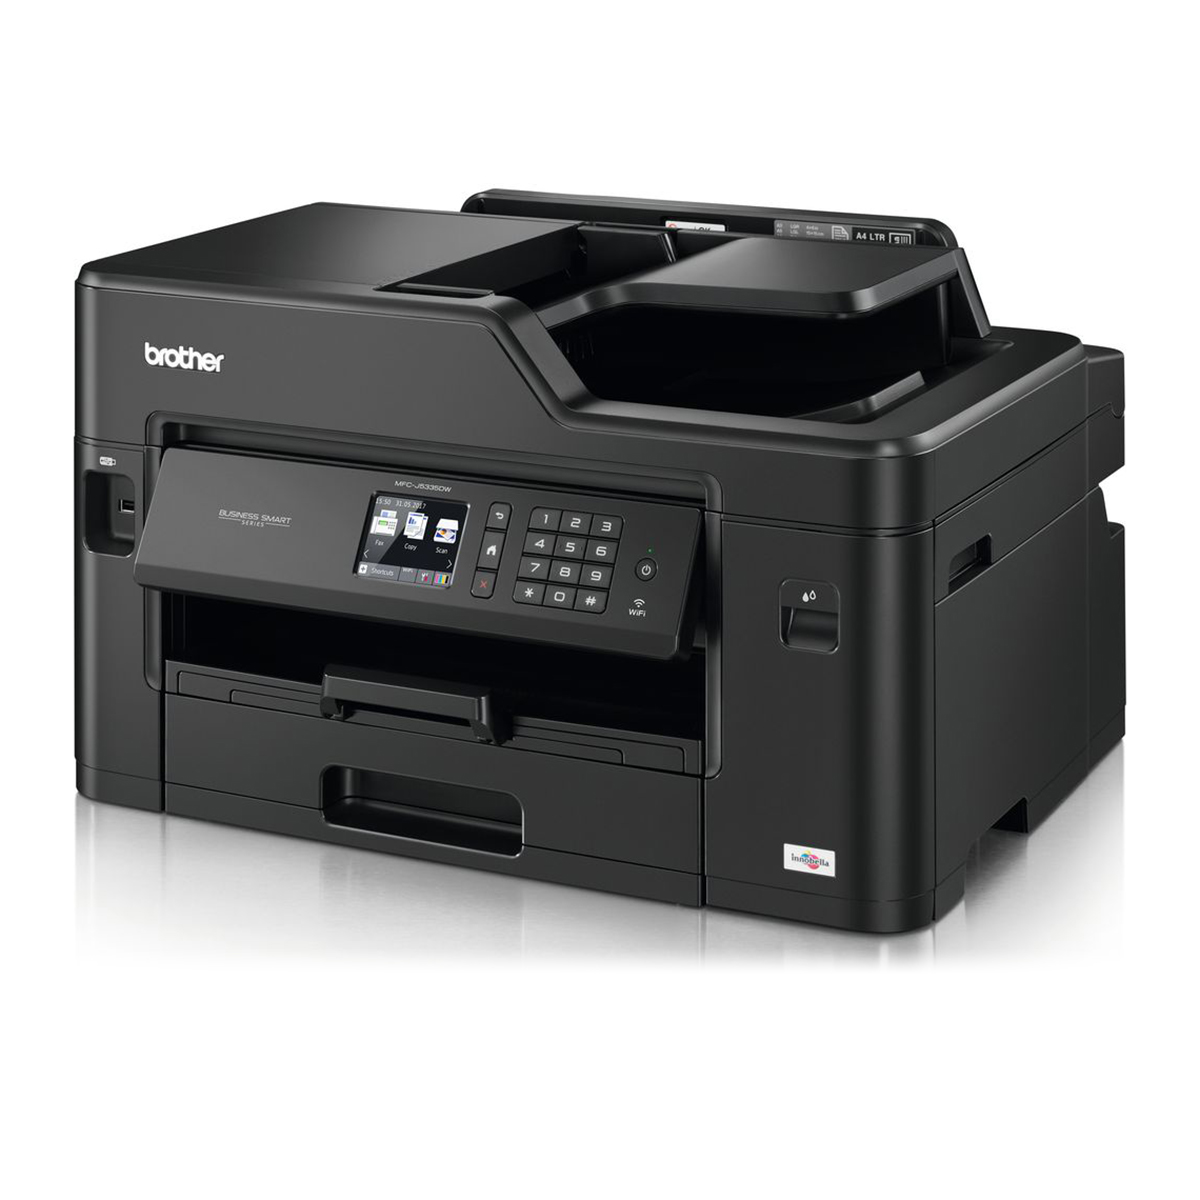 Brother MFC-J5335DW A Grade - Refurbished Machine